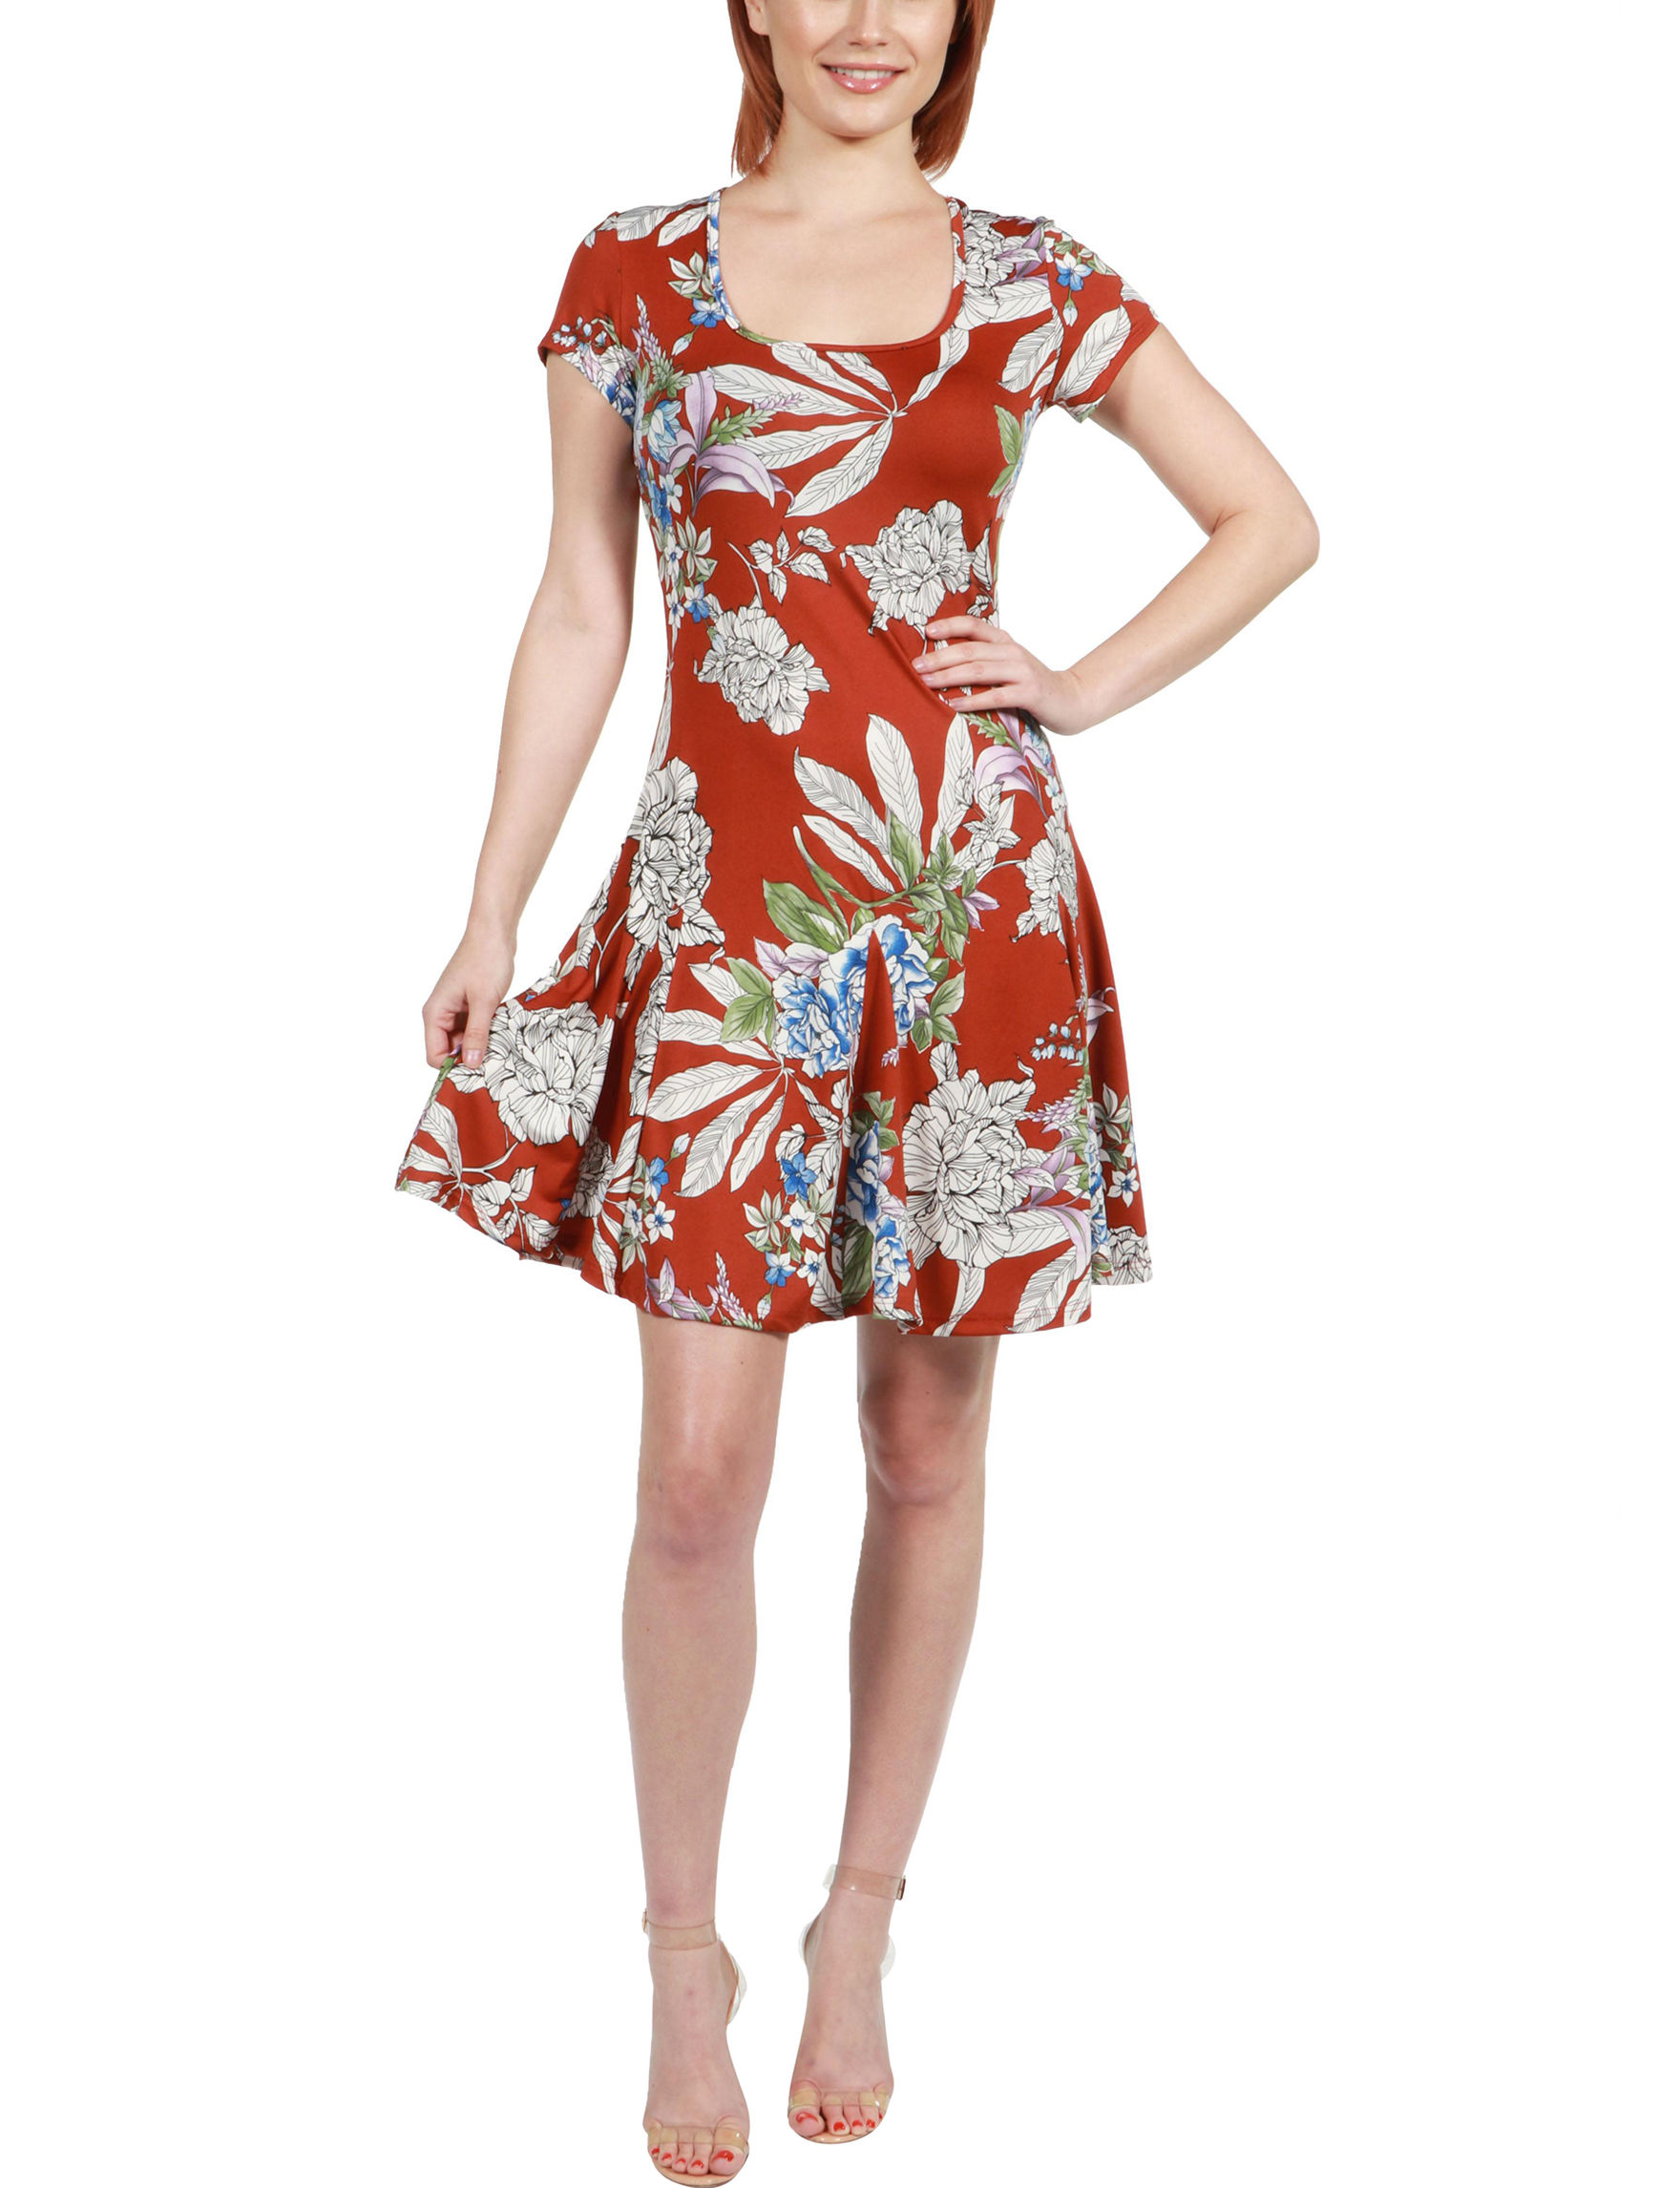 24Seven Comfort Apparel Red Multi Cocktail & Party Everyday & Casual A-line Dresses Fit & Flare Dresses